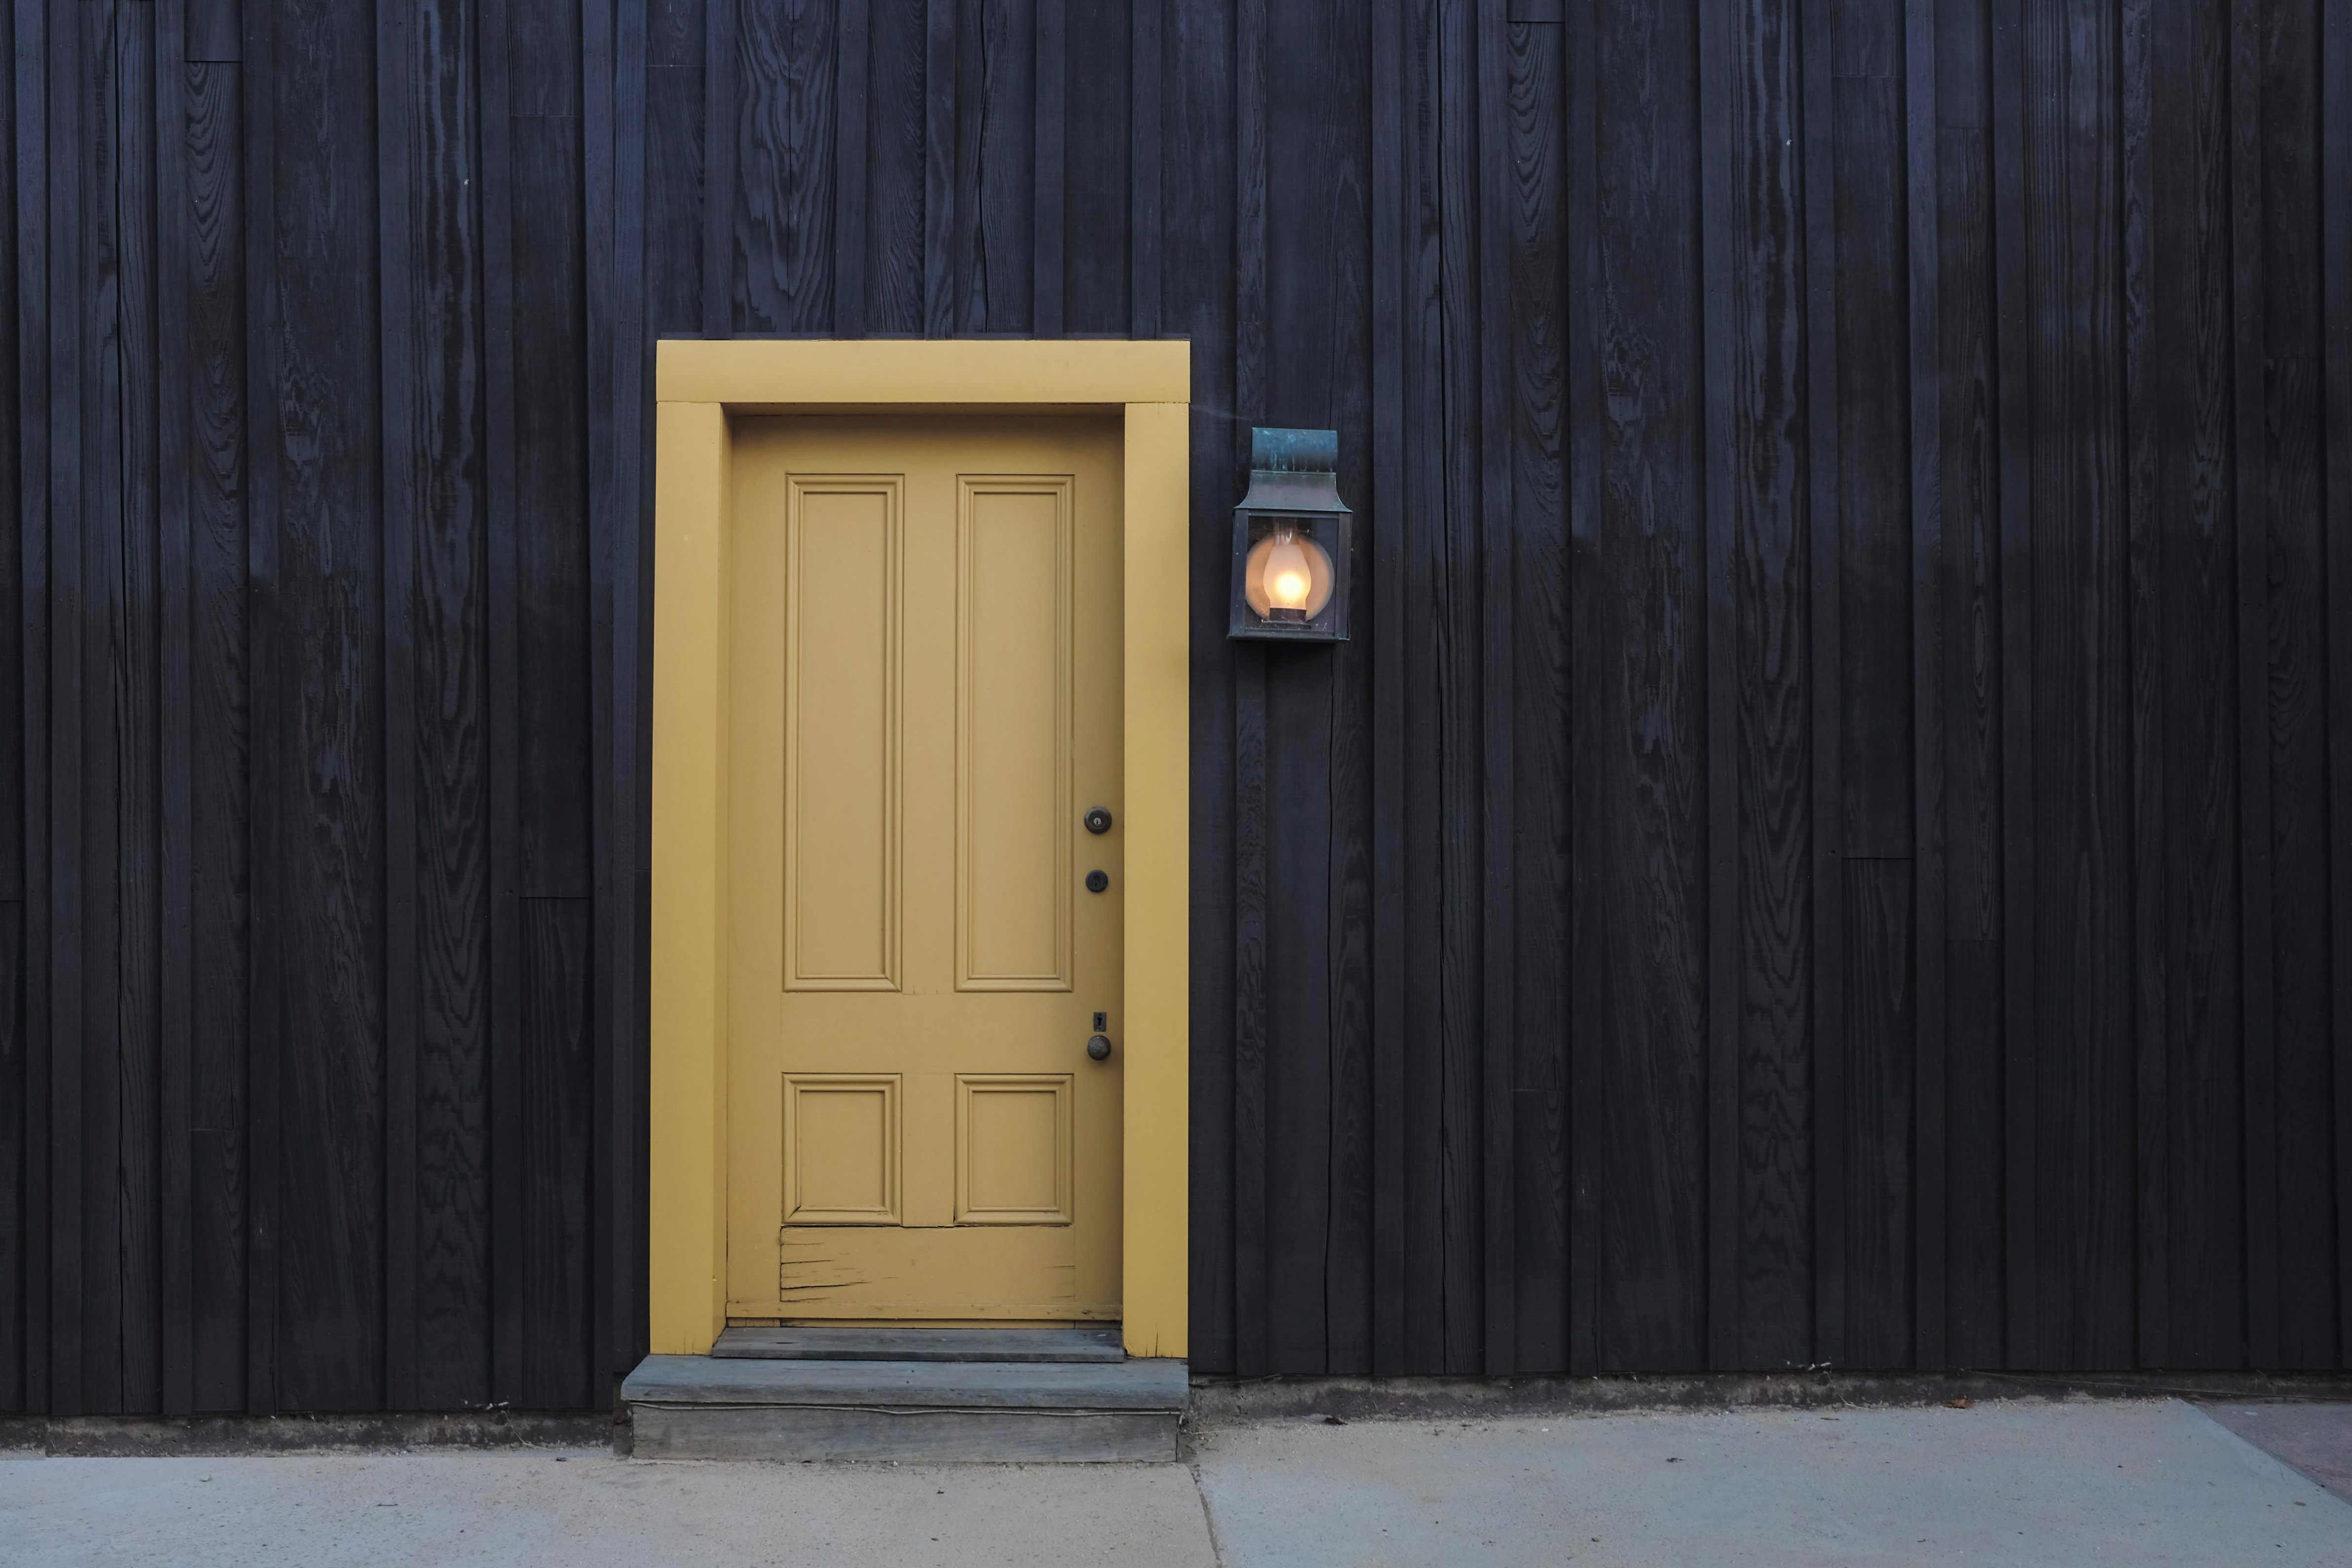 Free Download & Free stock photo of building door entrance Pezcame.Com